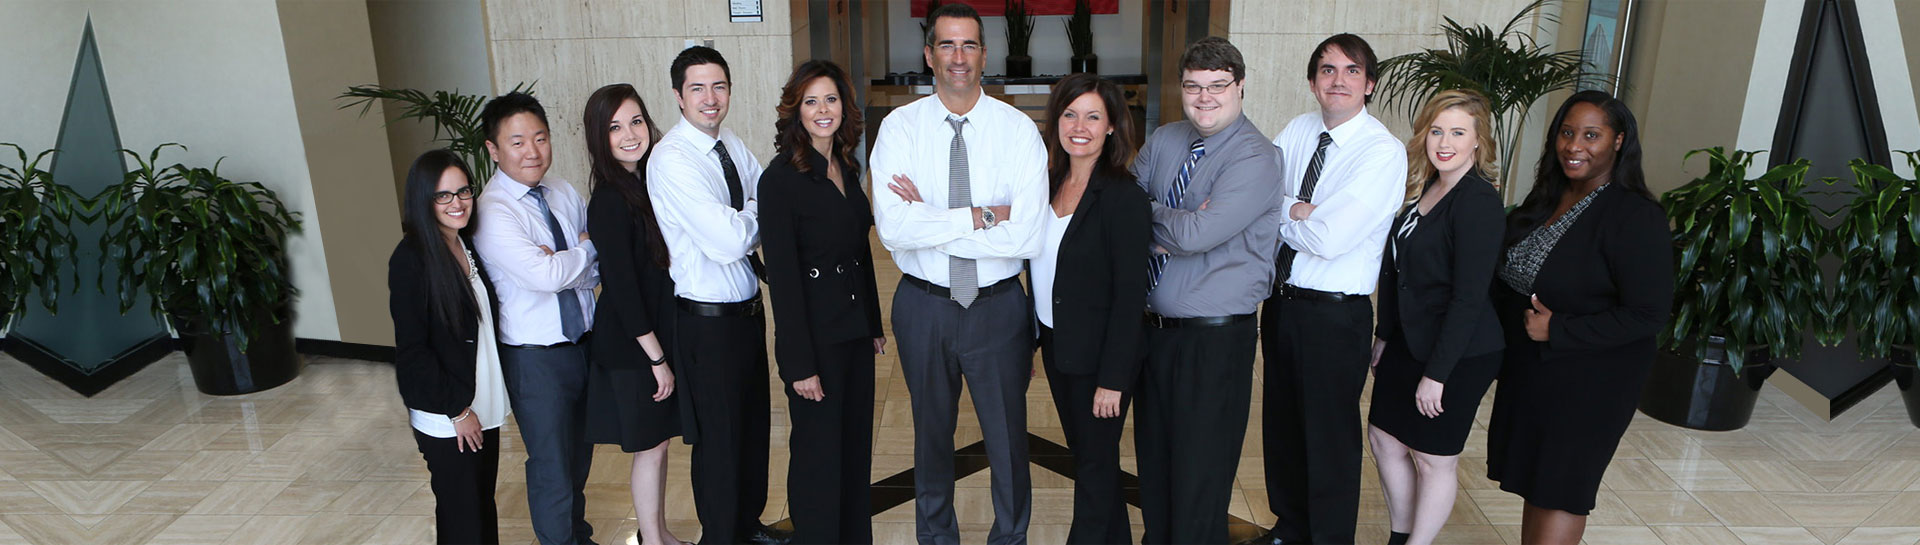 Nick Nemth and team of The Law offices of Nick Nemeth